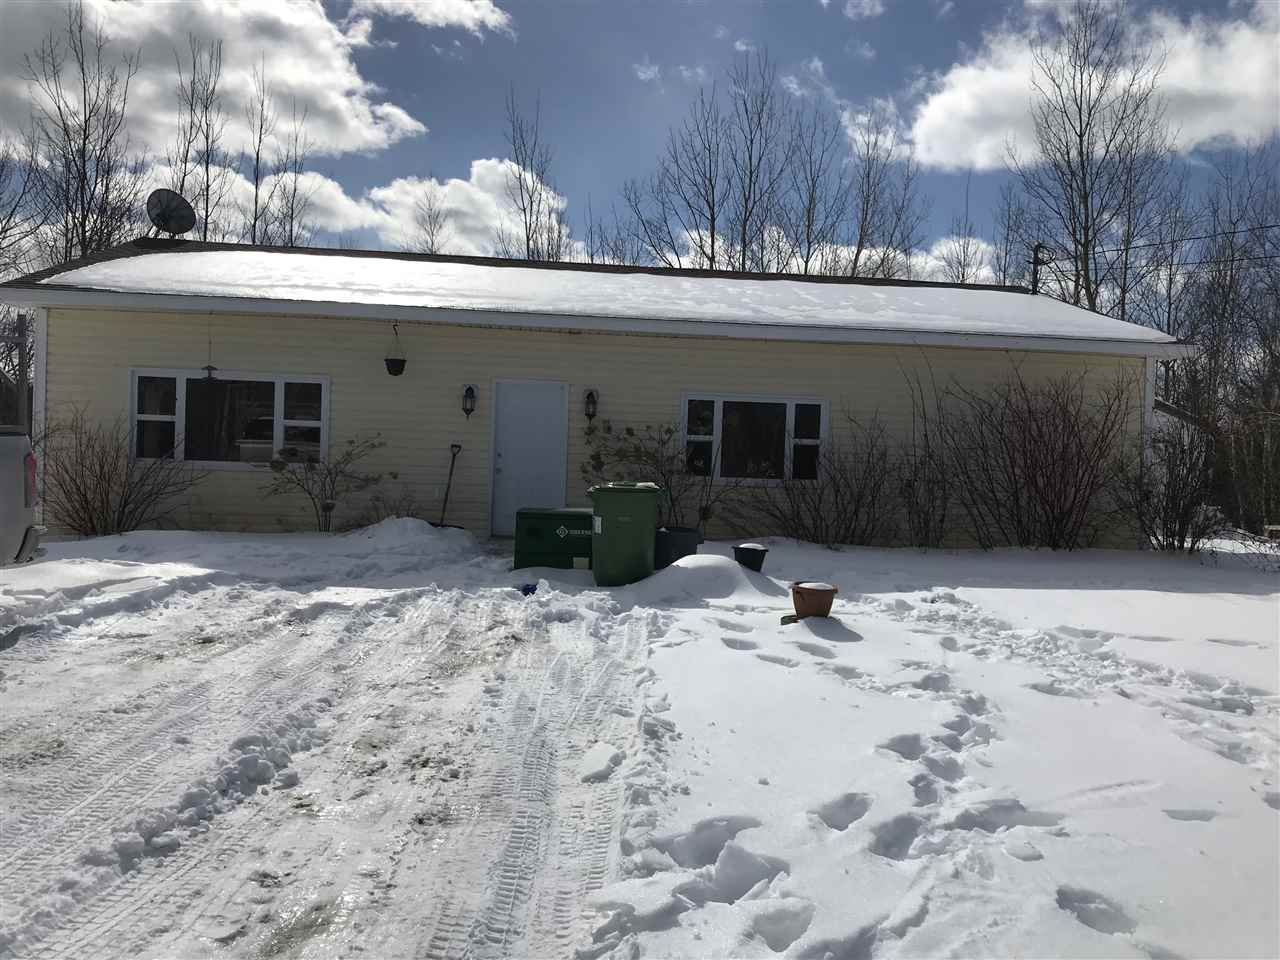 Main Photo: 7636 Pictou Landing Road in Pictou Landing: 108-Rural Pictou County Residential for sale (Northern Region)  : MLS®# 201904315